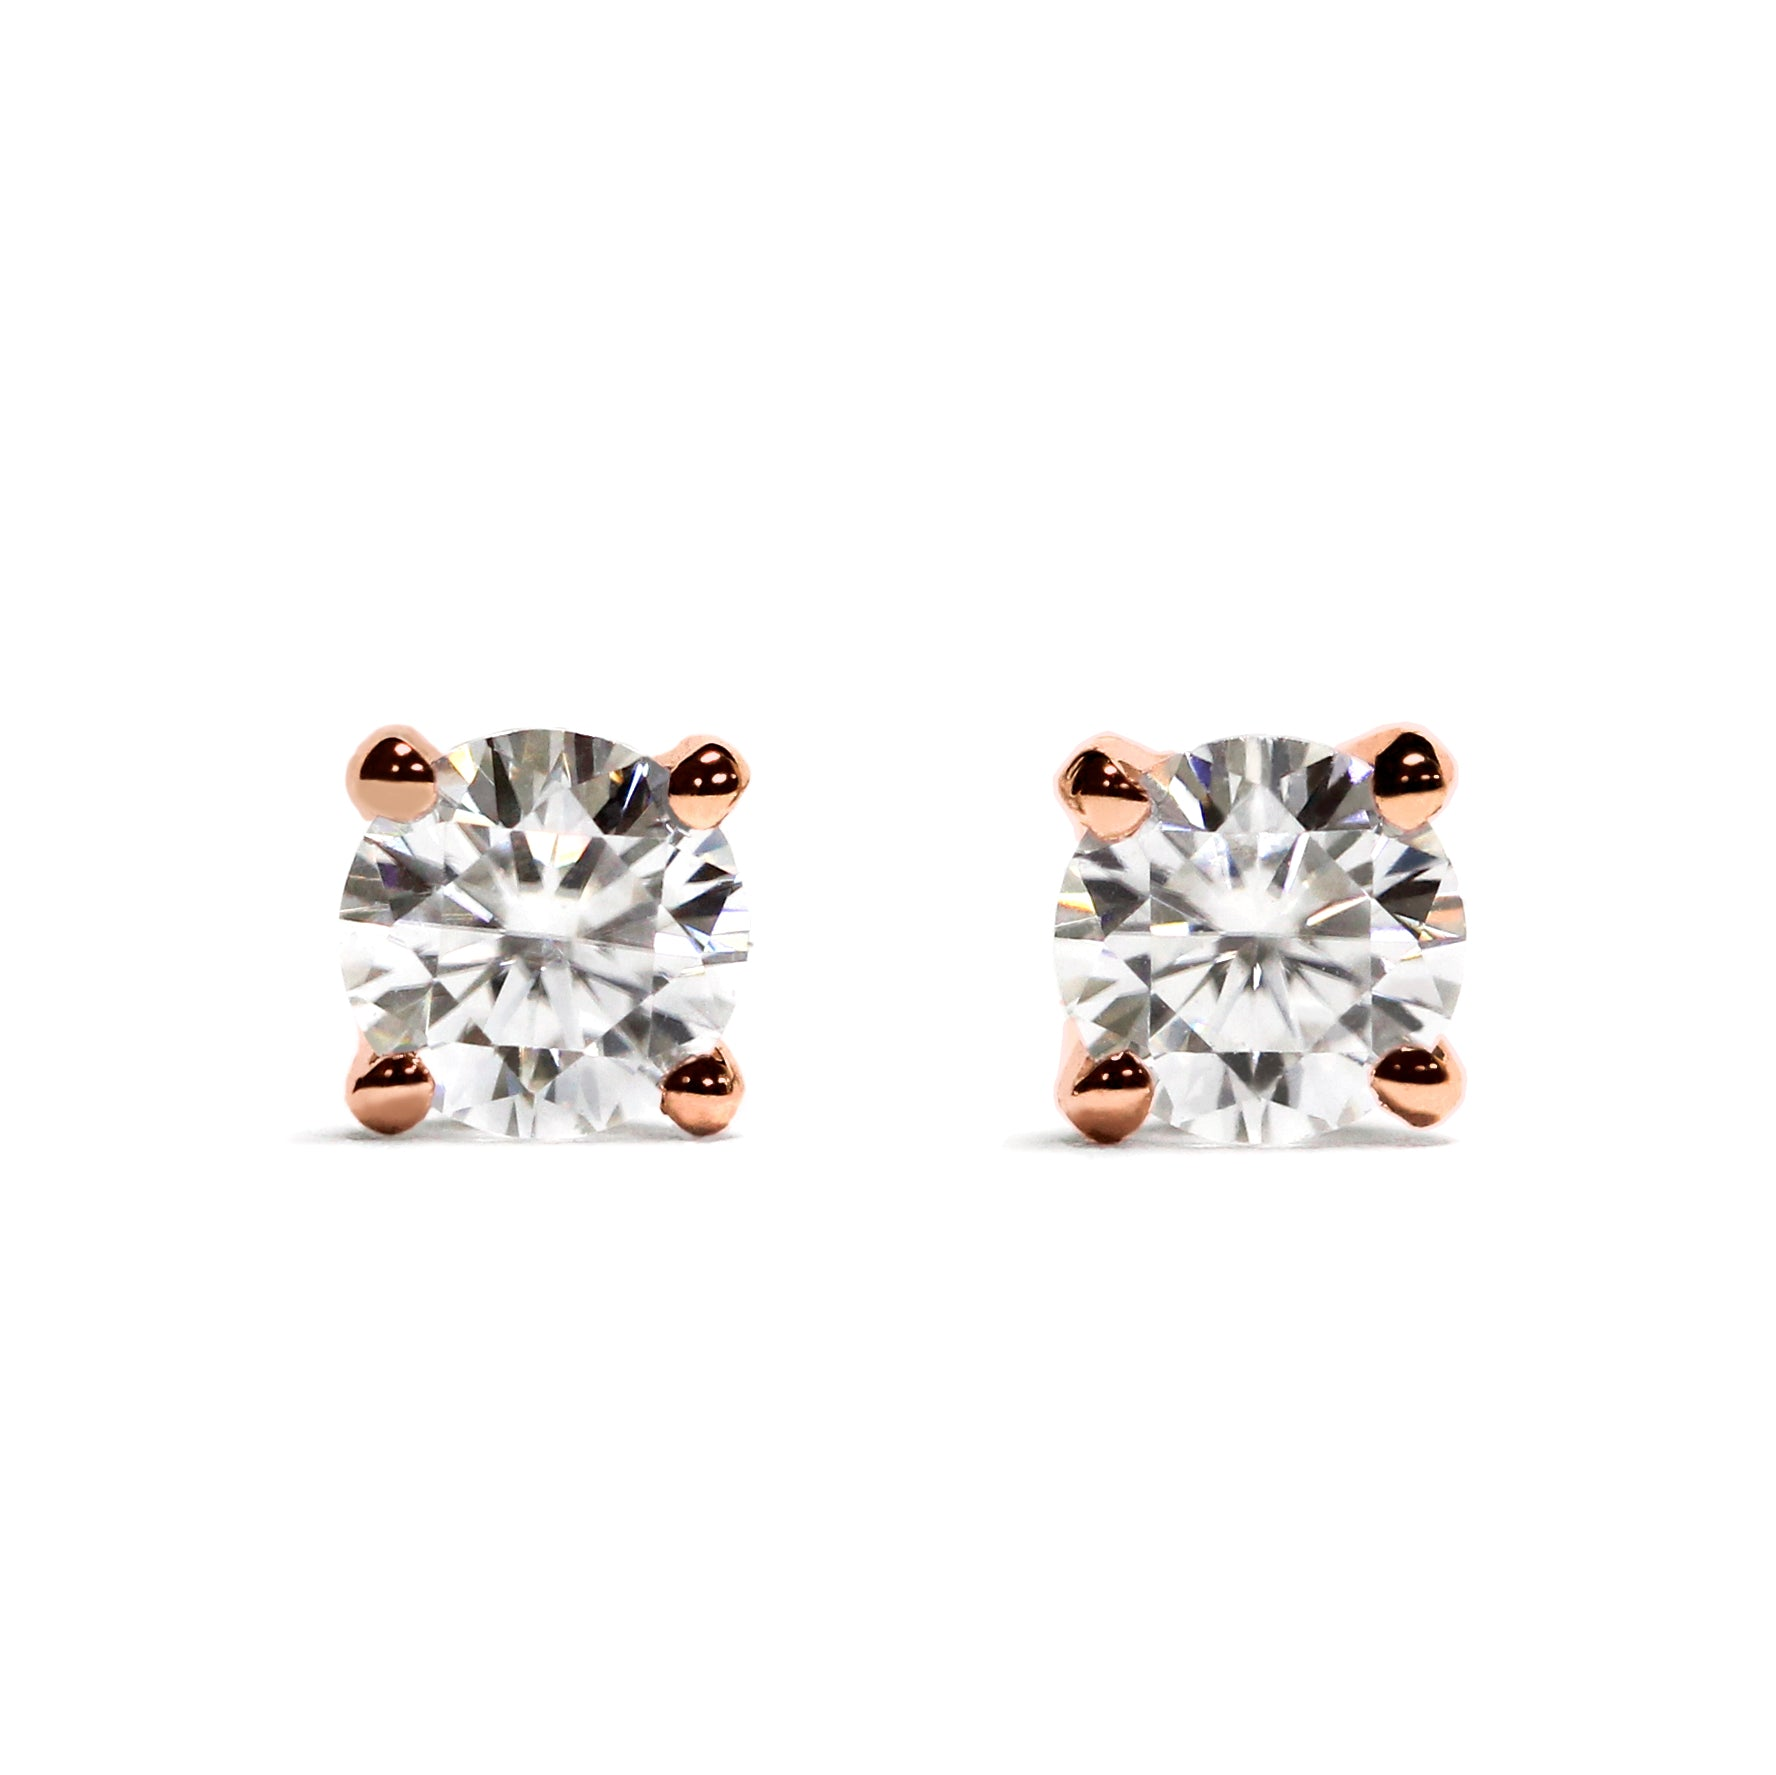 0.3 Carat Moissanite Solitaire 18K Gold Stud Earrings with Soft Silicone Gold Insert Backings